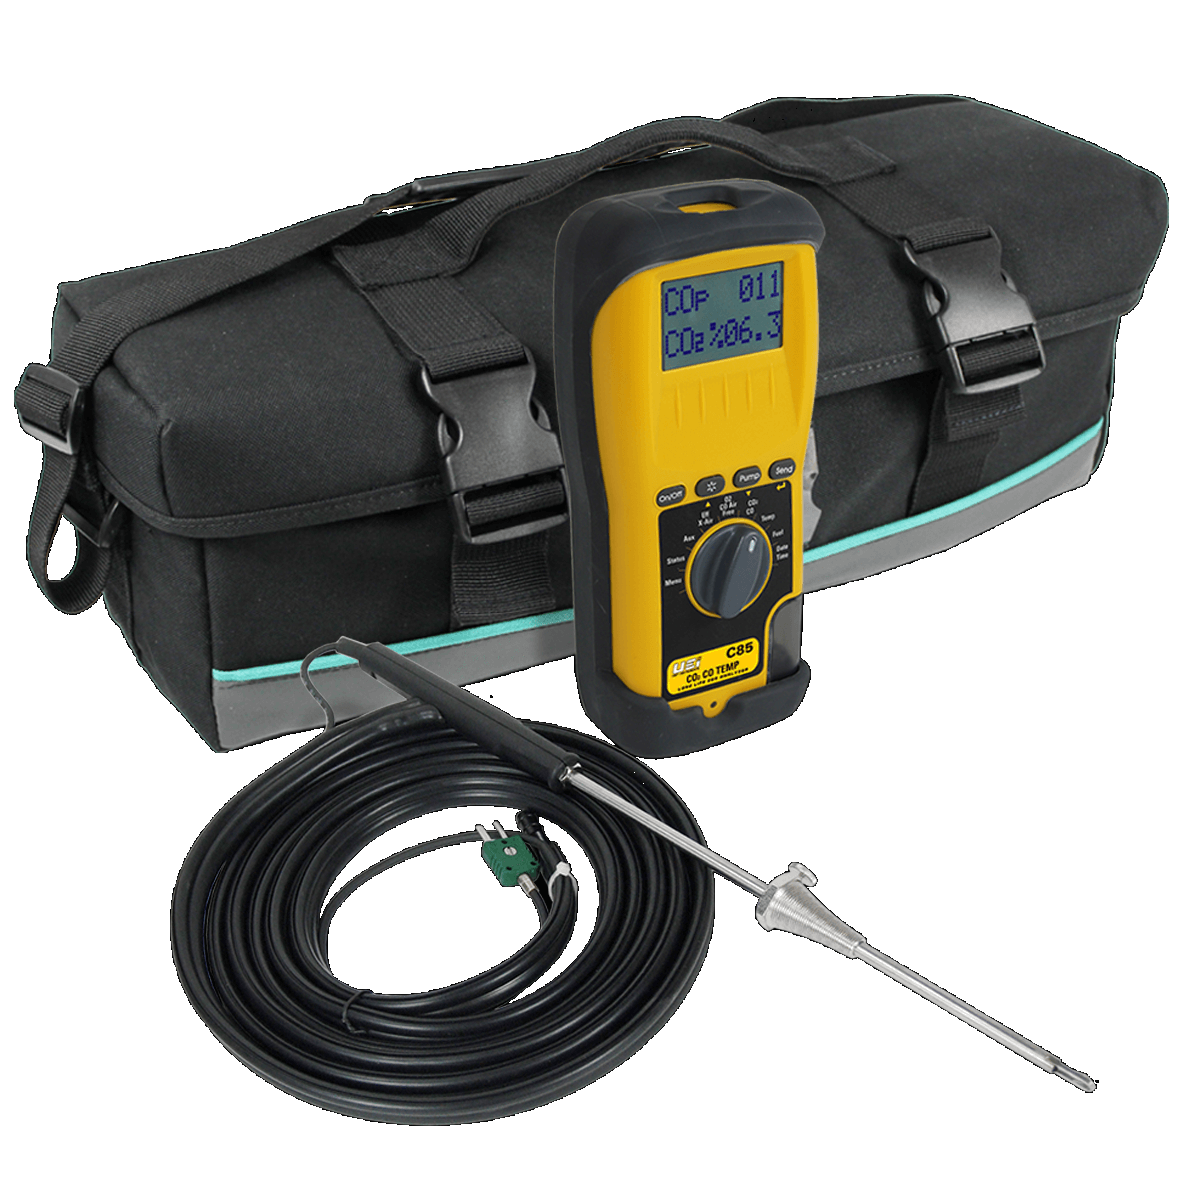 UEi C85 Combustion Analyzer with Long Lasting EOS Technology [Free 2nd Day Shipping]